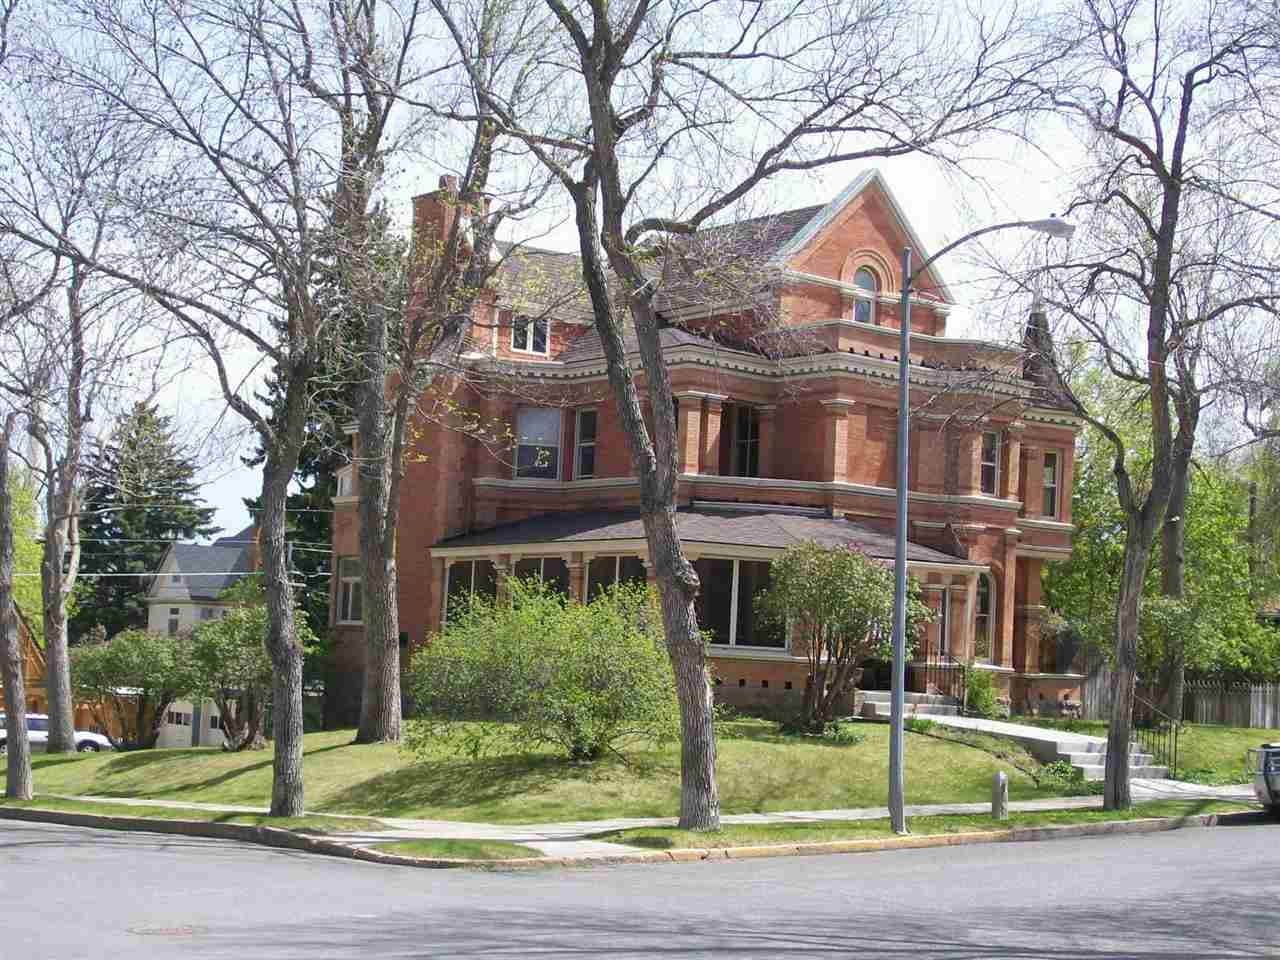 The Hauser Mansion